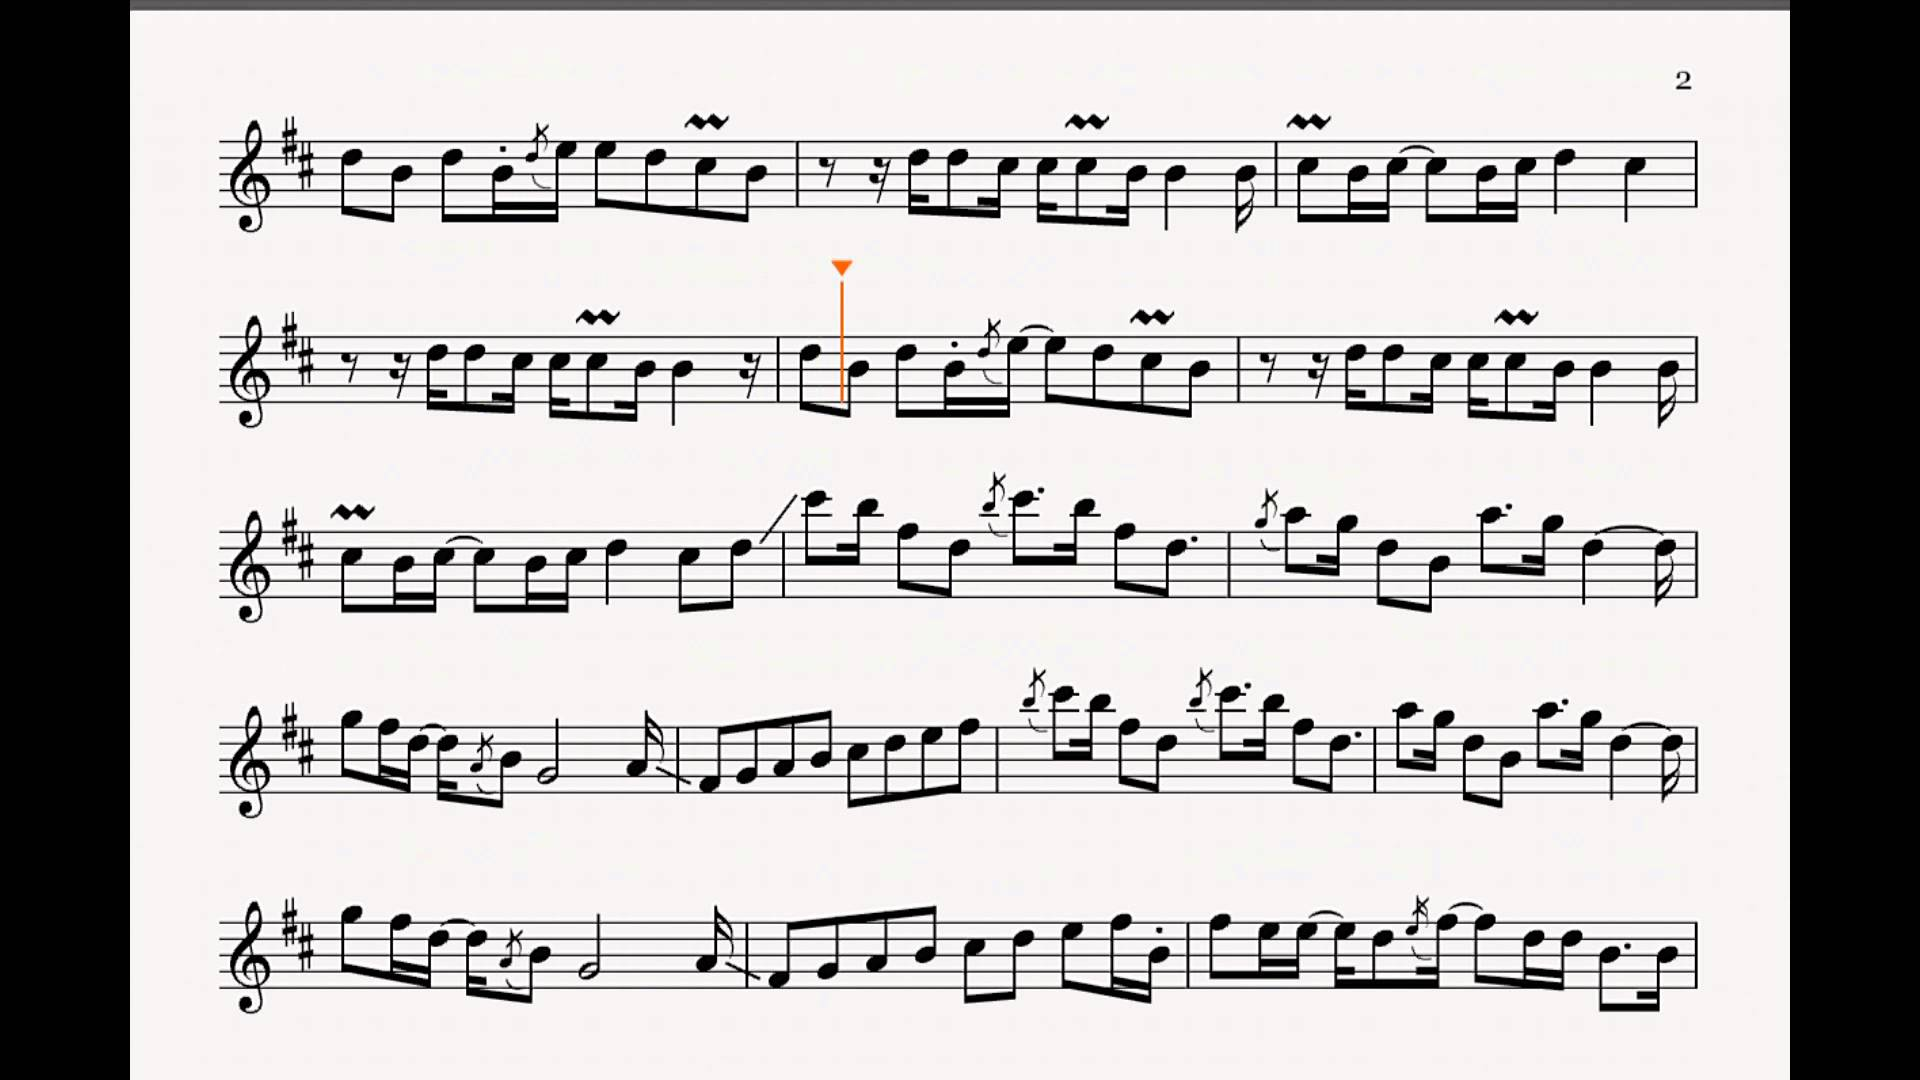 Careless Whisper - Lead & Solo transcription - Eb and Bb version for